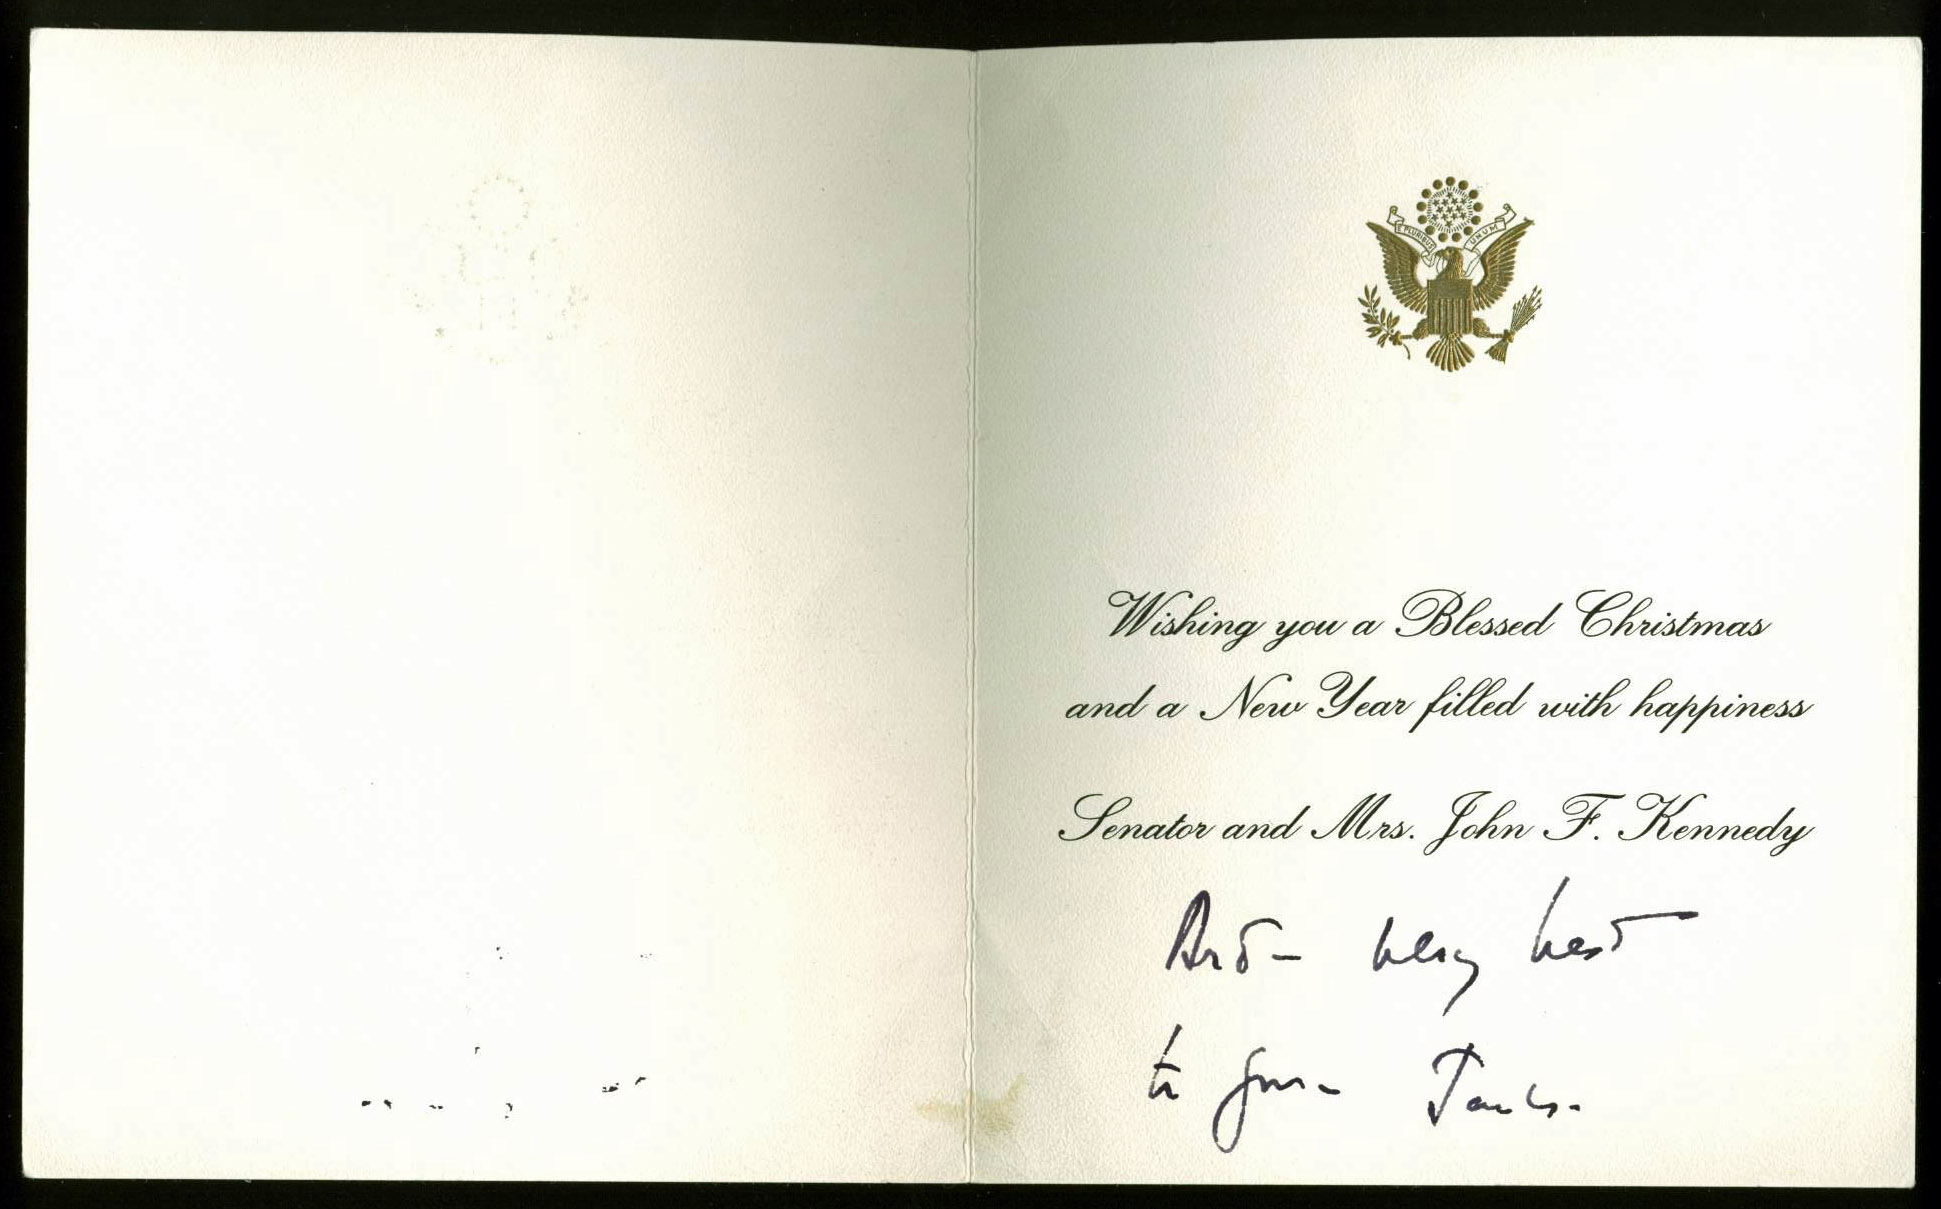 john-f-kennedy-jack-authentic-signed-1959-christmas-card-psa-dna-aa08920-2